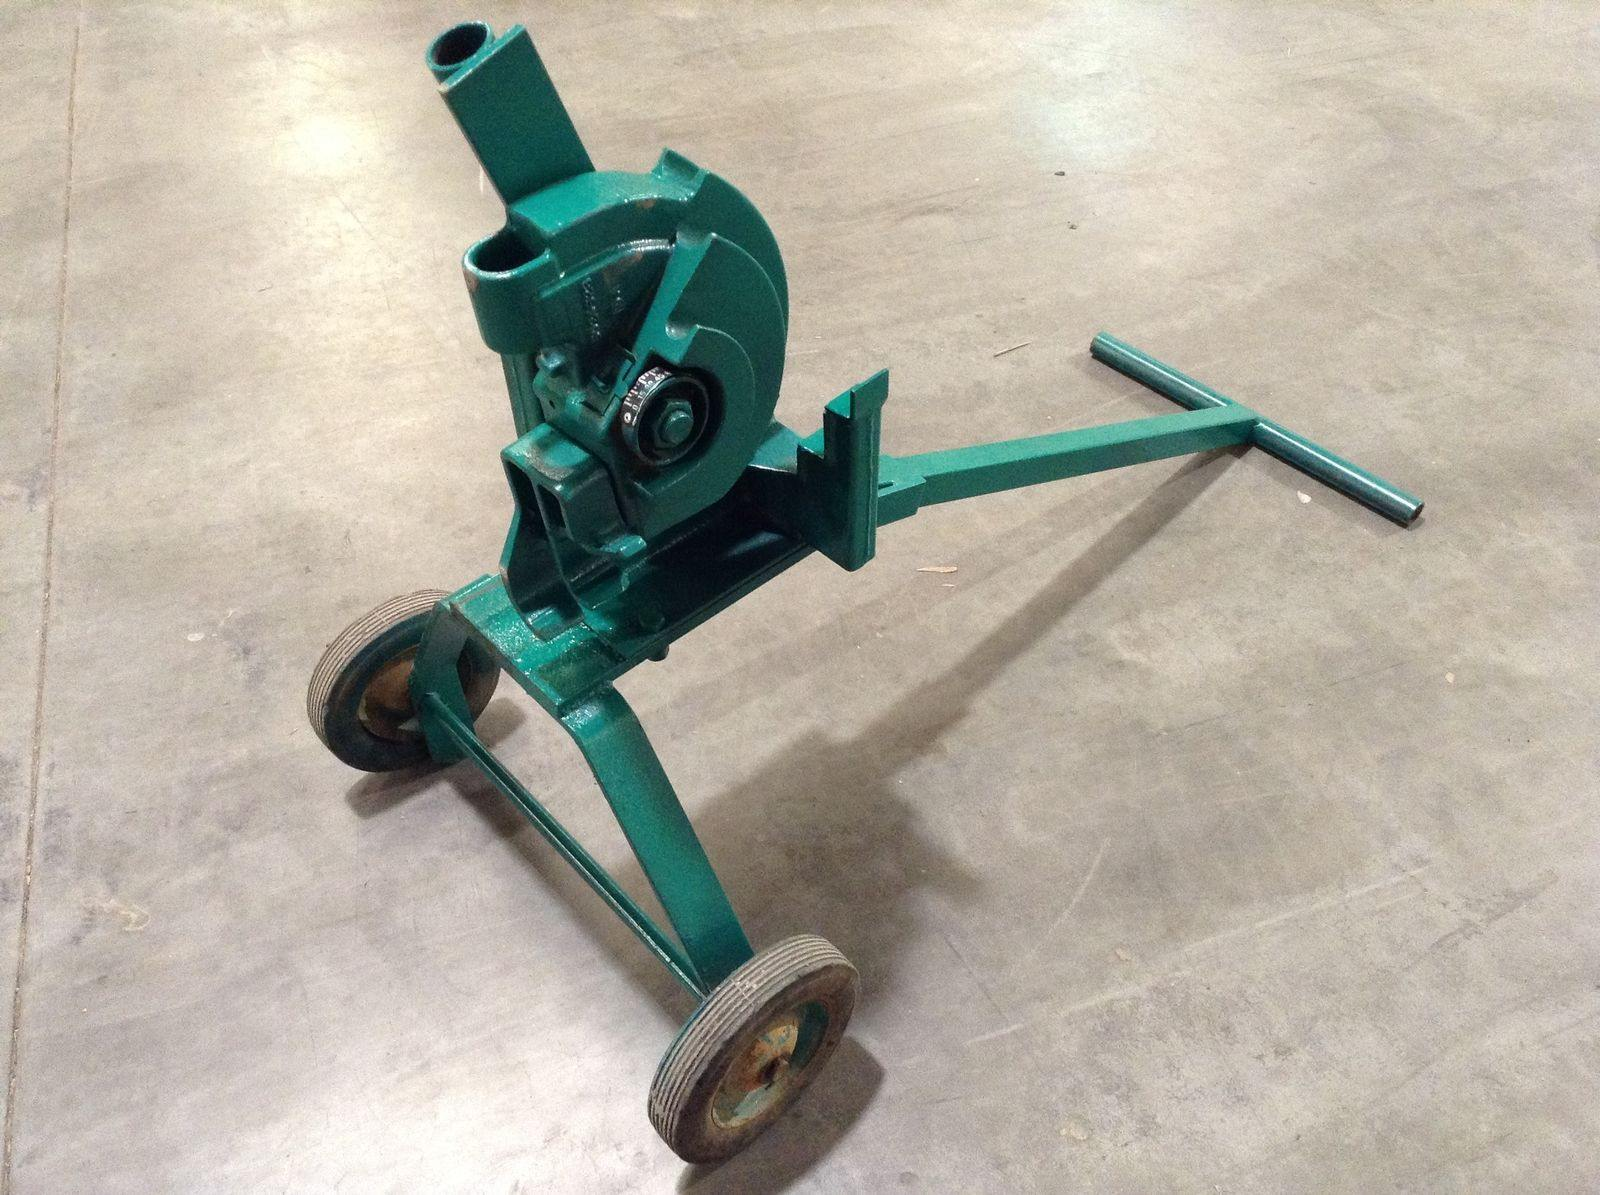 Greenlee 1800 Mechanical Bender for 1/2, 3/4, and 1-Inch IMC/Rigid Conduit Reconditioned